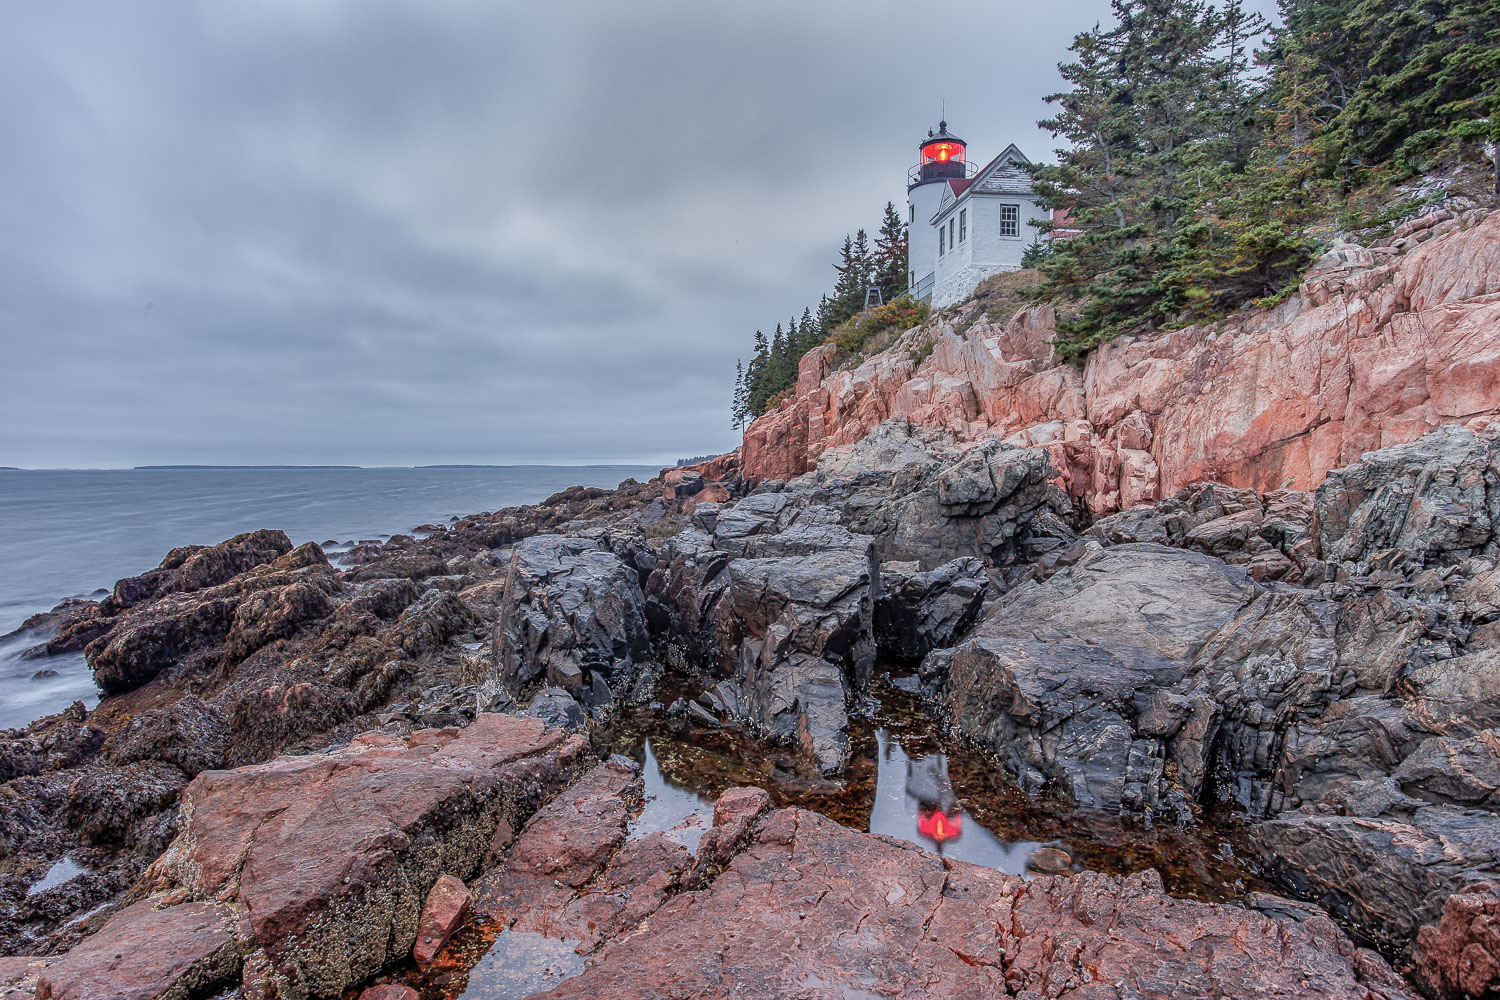 Cyber-Scouting Photo Locations - Bass Harbor Lighthouse on a cloudy day